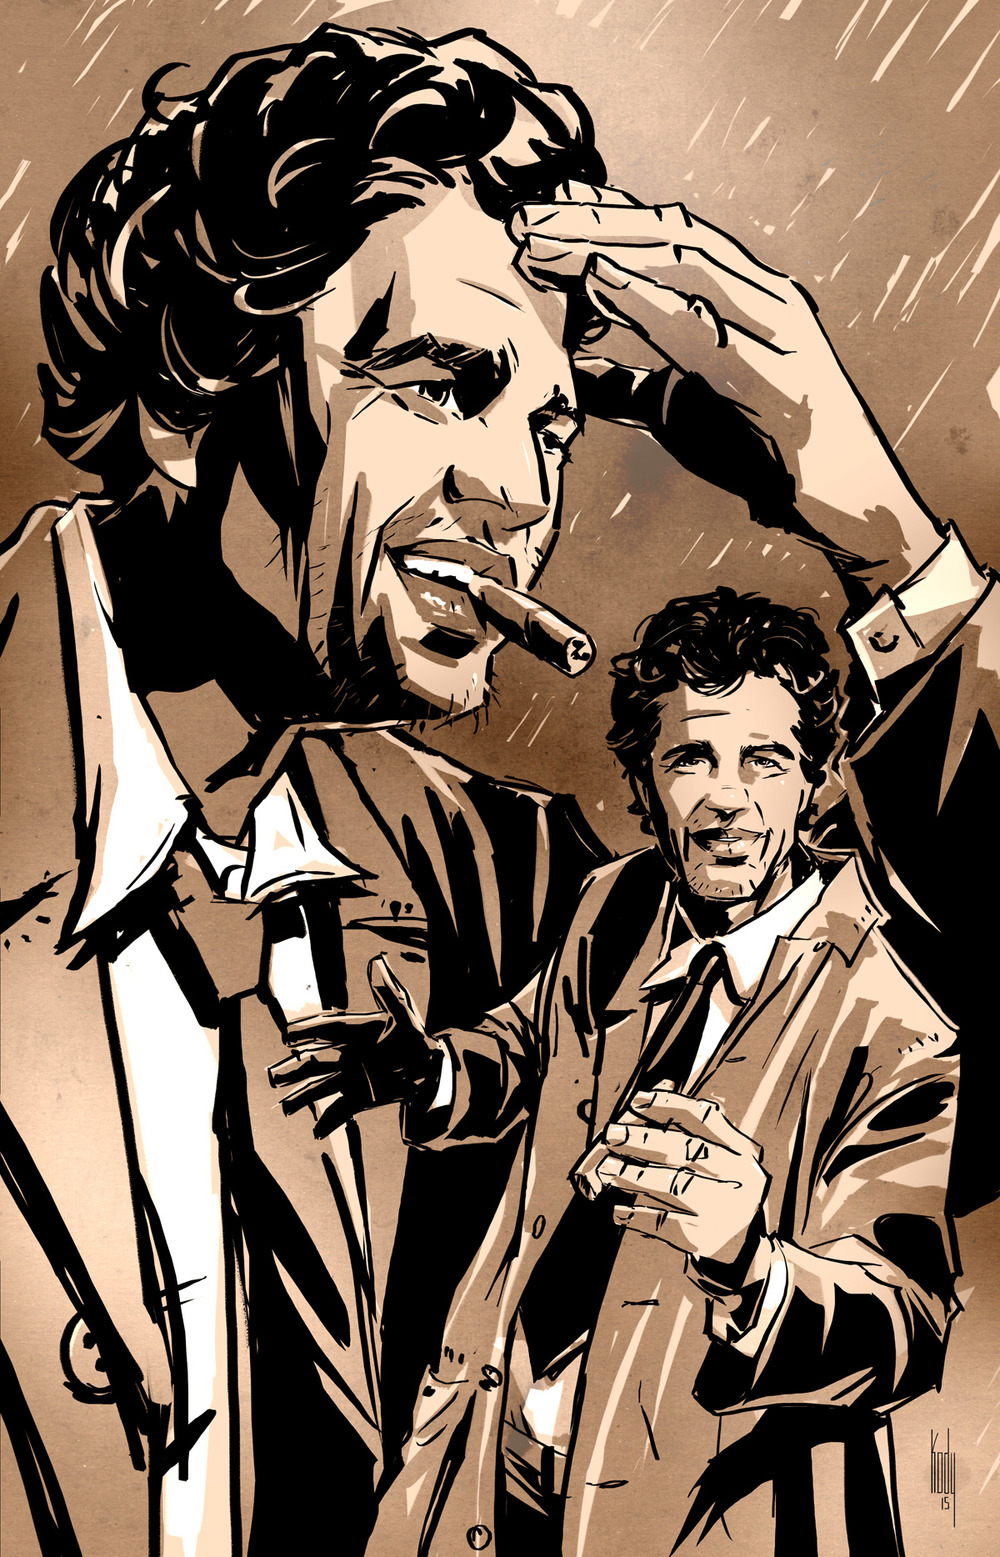 Columbo  The antagonist in a COLUMBO story is narcissism. Columbo's detective work is altruism. It's a wonderful story engine.  Back when Zodiac came out, Mark Ruffalo gave off the Columbo spark. I remember commenting on it immediately after the film. I wasn't the only one that saw it.  Meanwhile, screenwriter/producer Gary Whitta's been pushing for an actual Columbo project starring Mark Ruffalo and he's got some traction in  social media  and in  entertainment news .   To be clear, I'm not involved with the project at all, but I did want to offer my support online. Idid a quick concept piece last night to see what a Ruffalo Columbo might look like. Enjoy.